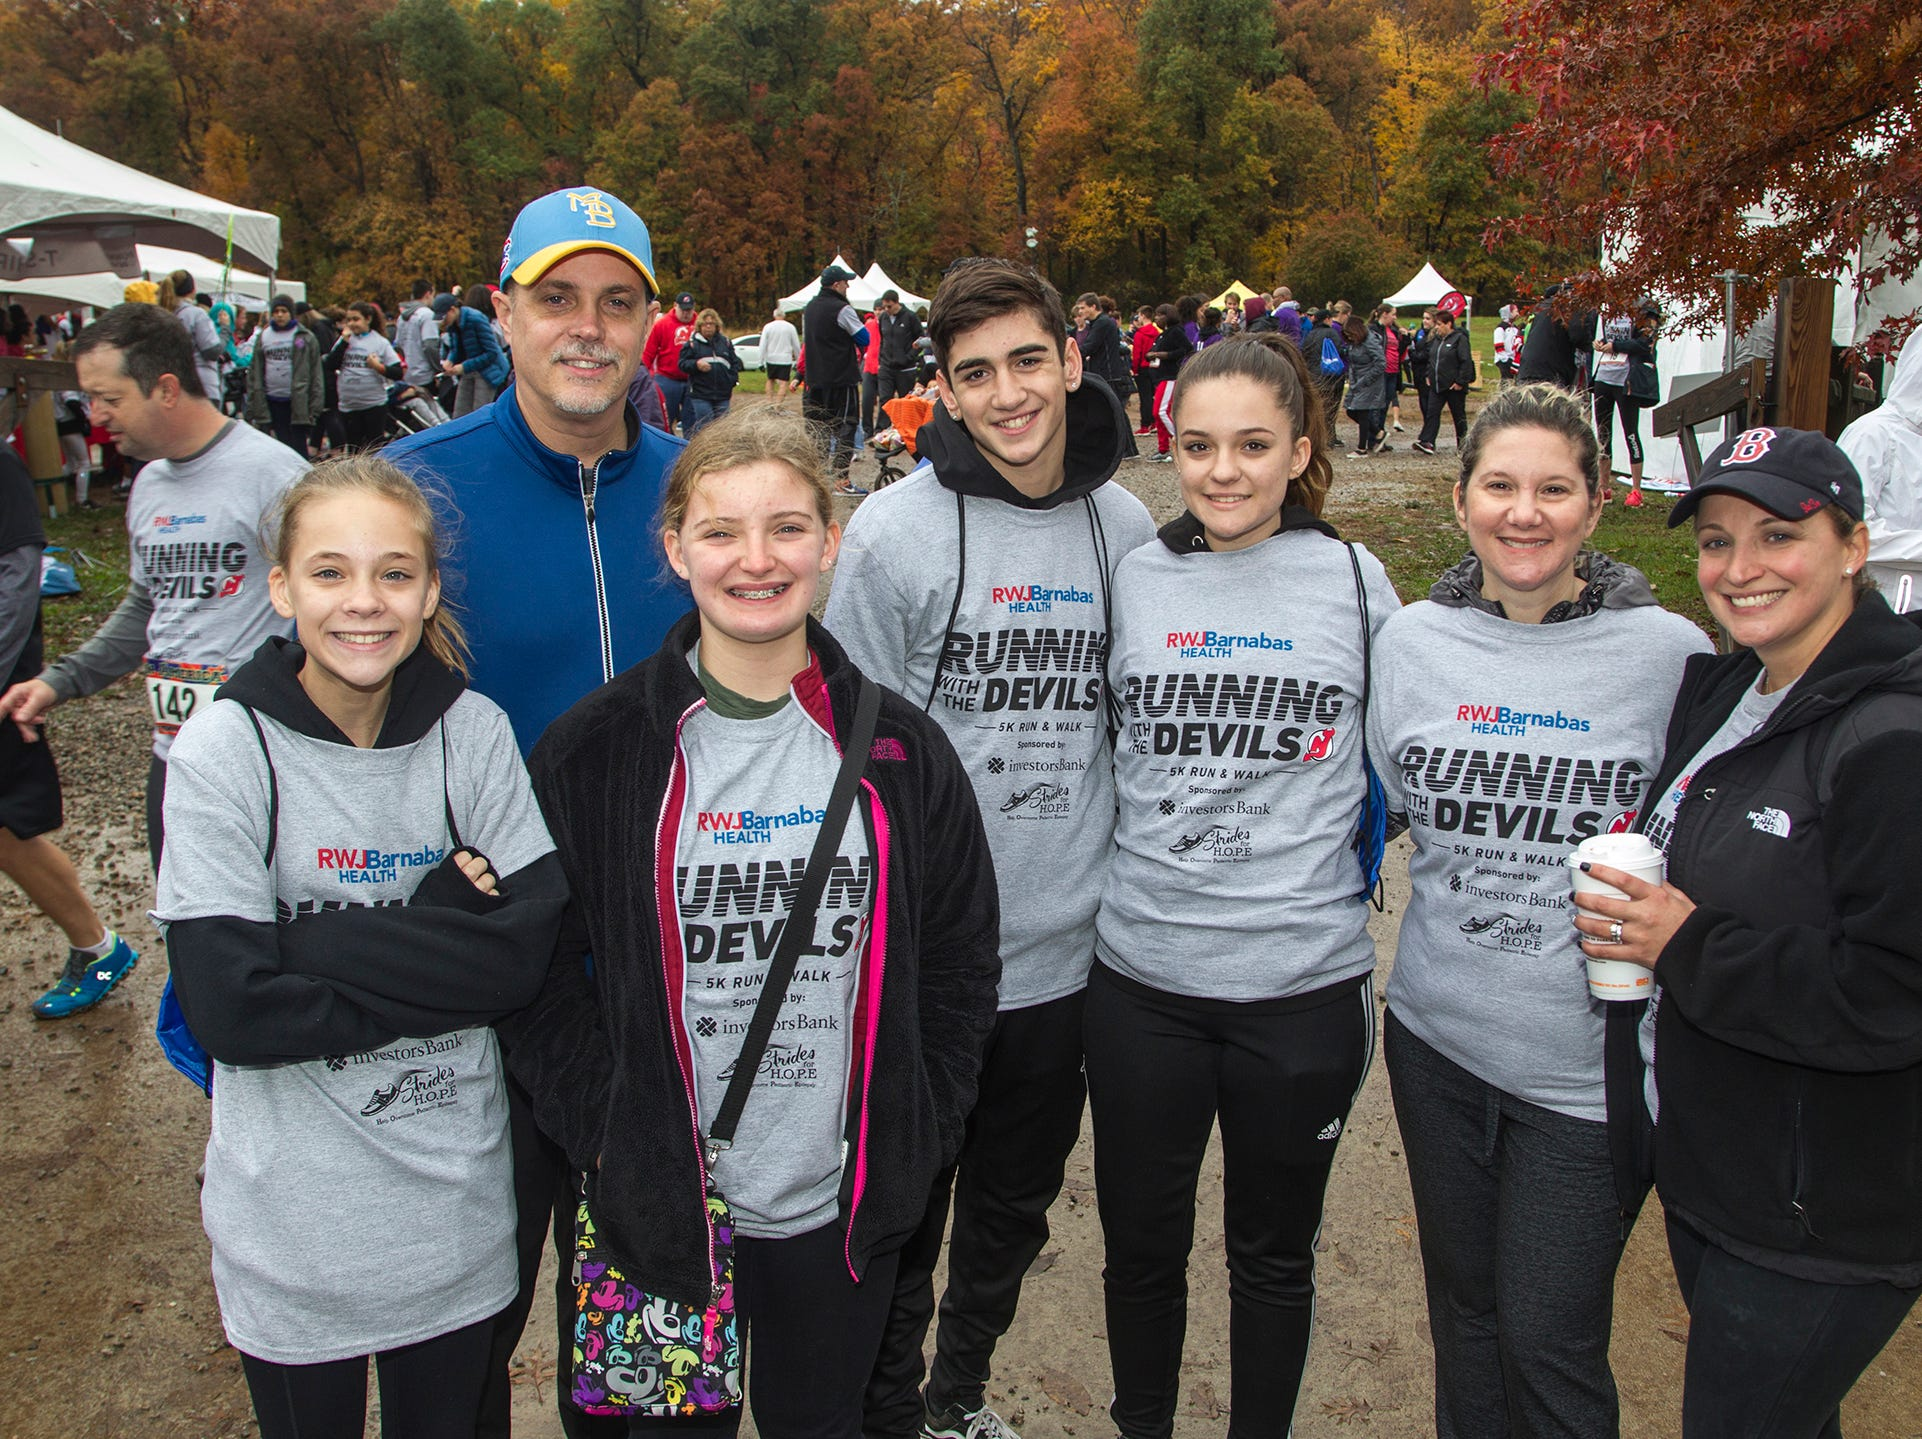 The Maniscalchi Family. RWJBarnabas Health Running with the Devils 5K Run and Family Fun Walk at South Mountain Recreation in West Orange. 10/03/2018